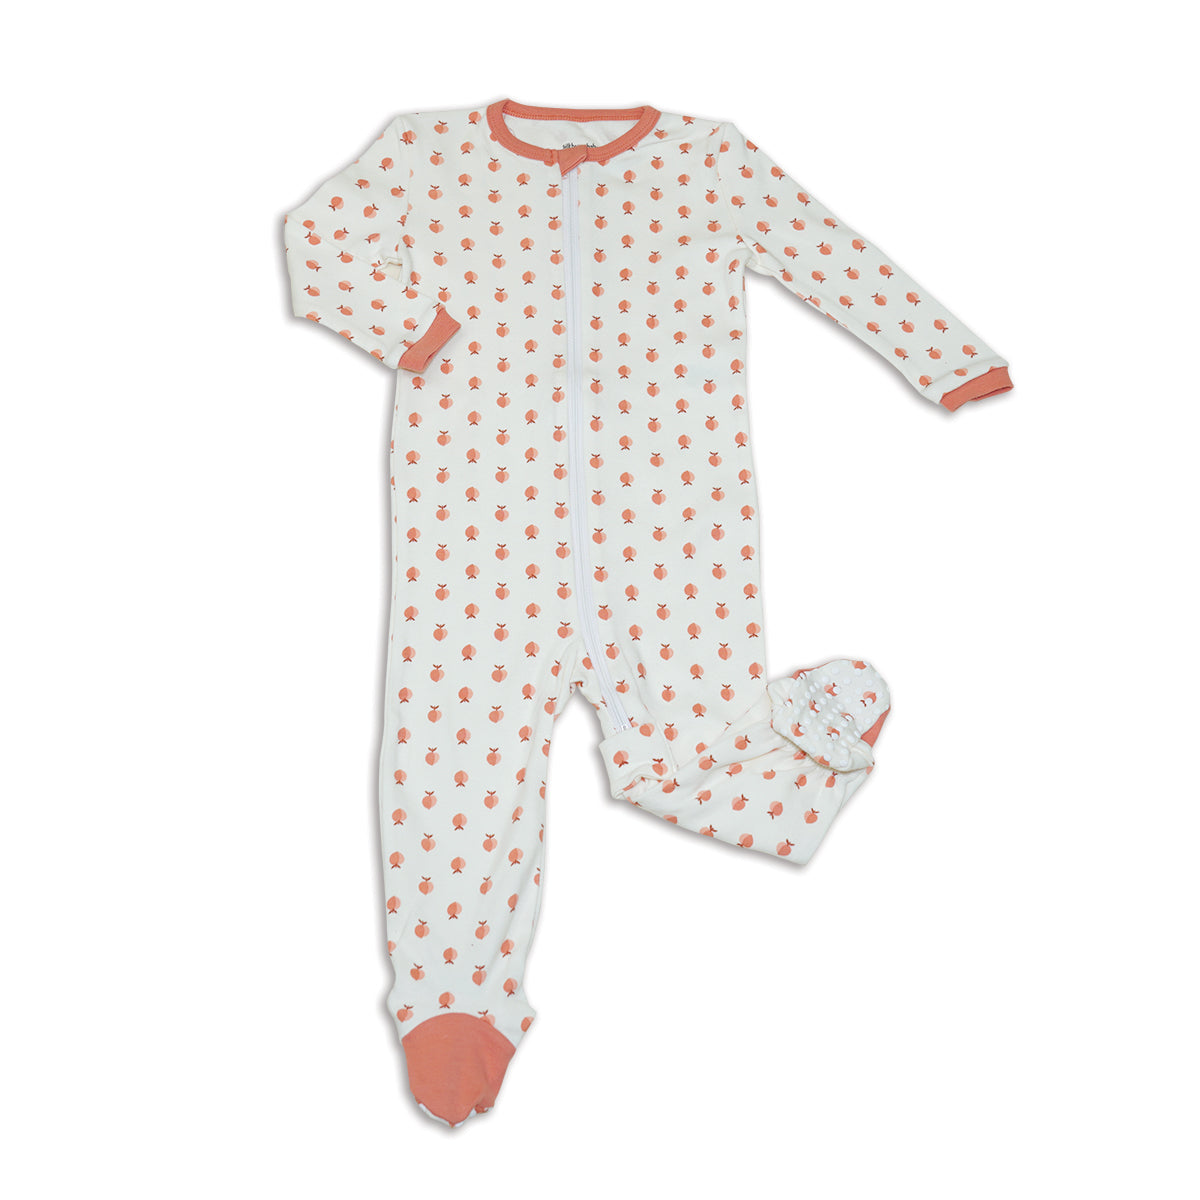 Organic Cotton Zip-up Footed Sleeper (Peachy Keen)